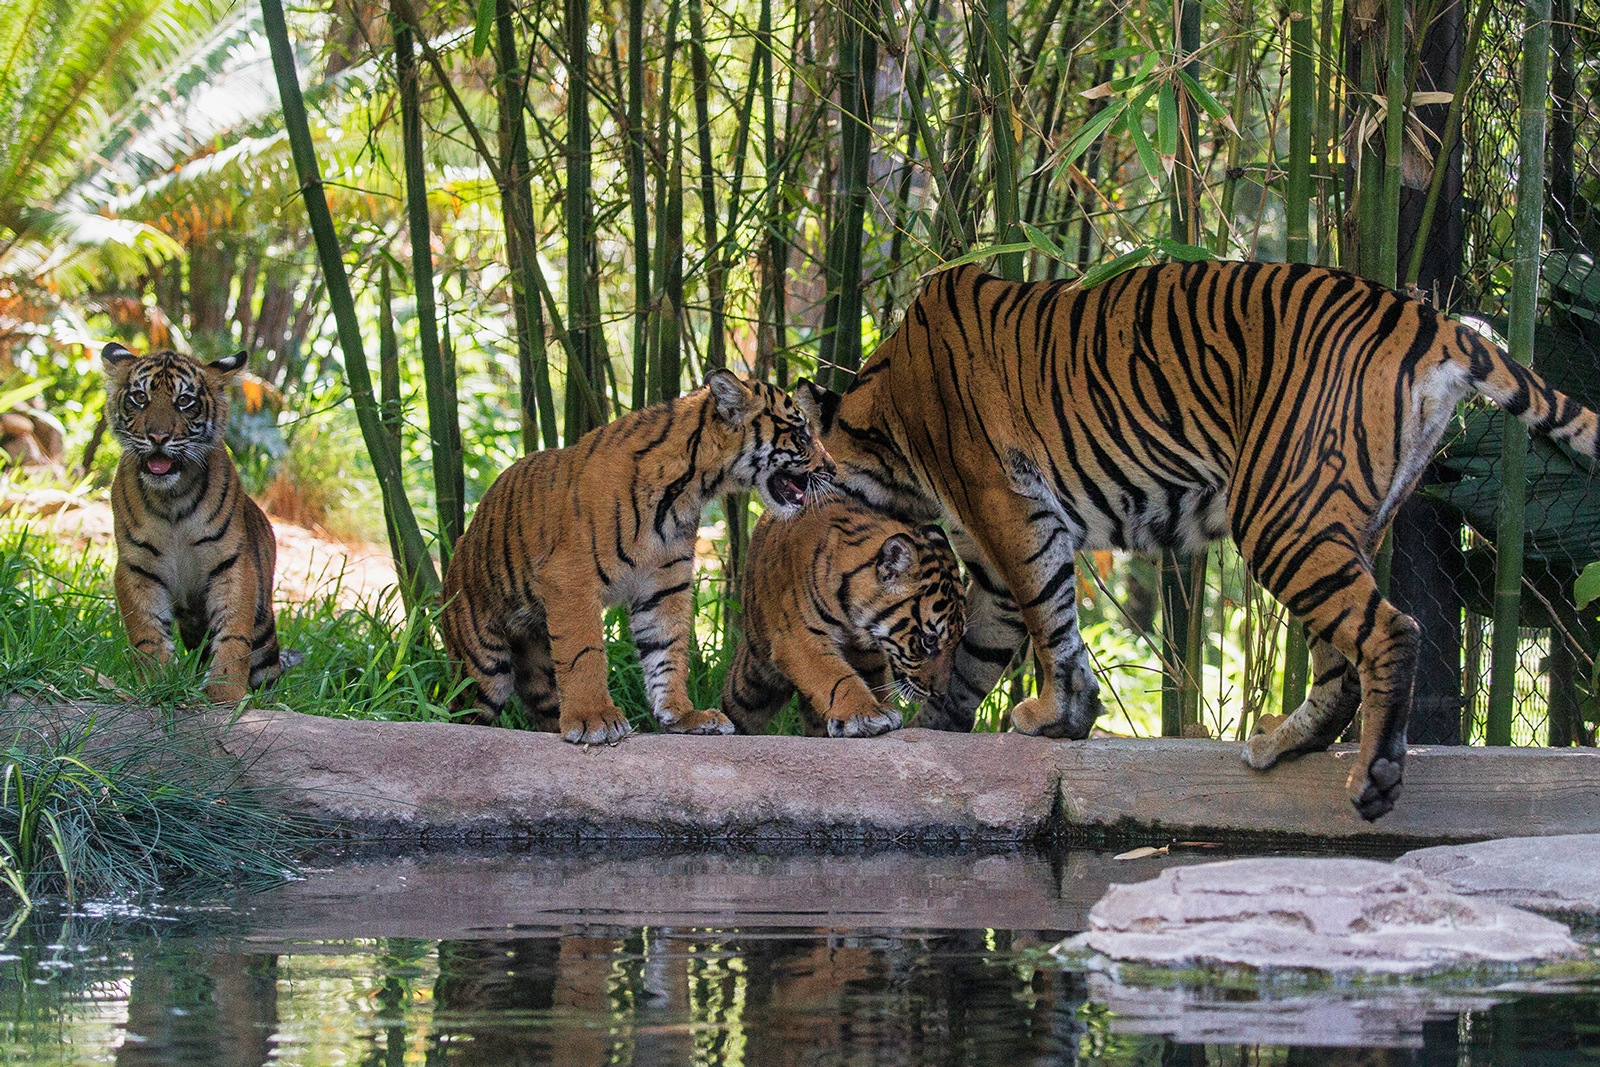 Tiger Cubs Explore New Habitat at the San Diego Zoo Safari Park